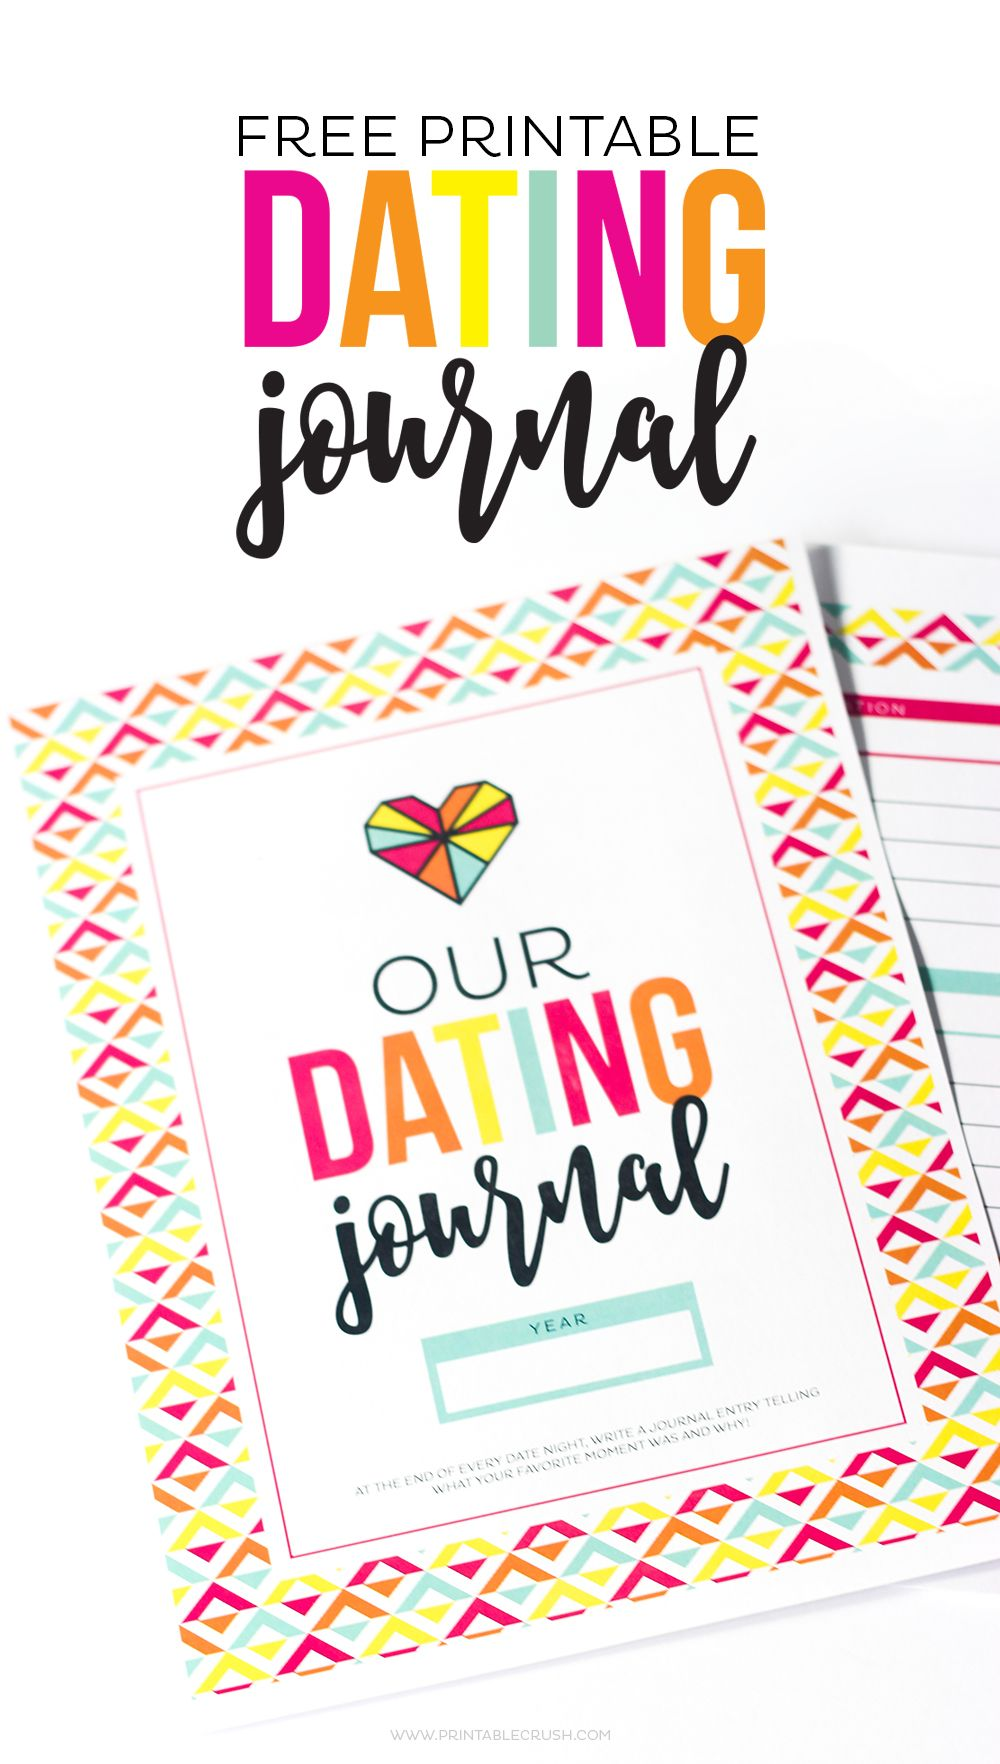 Fun and FREE Printable Dating Journal Romantic date